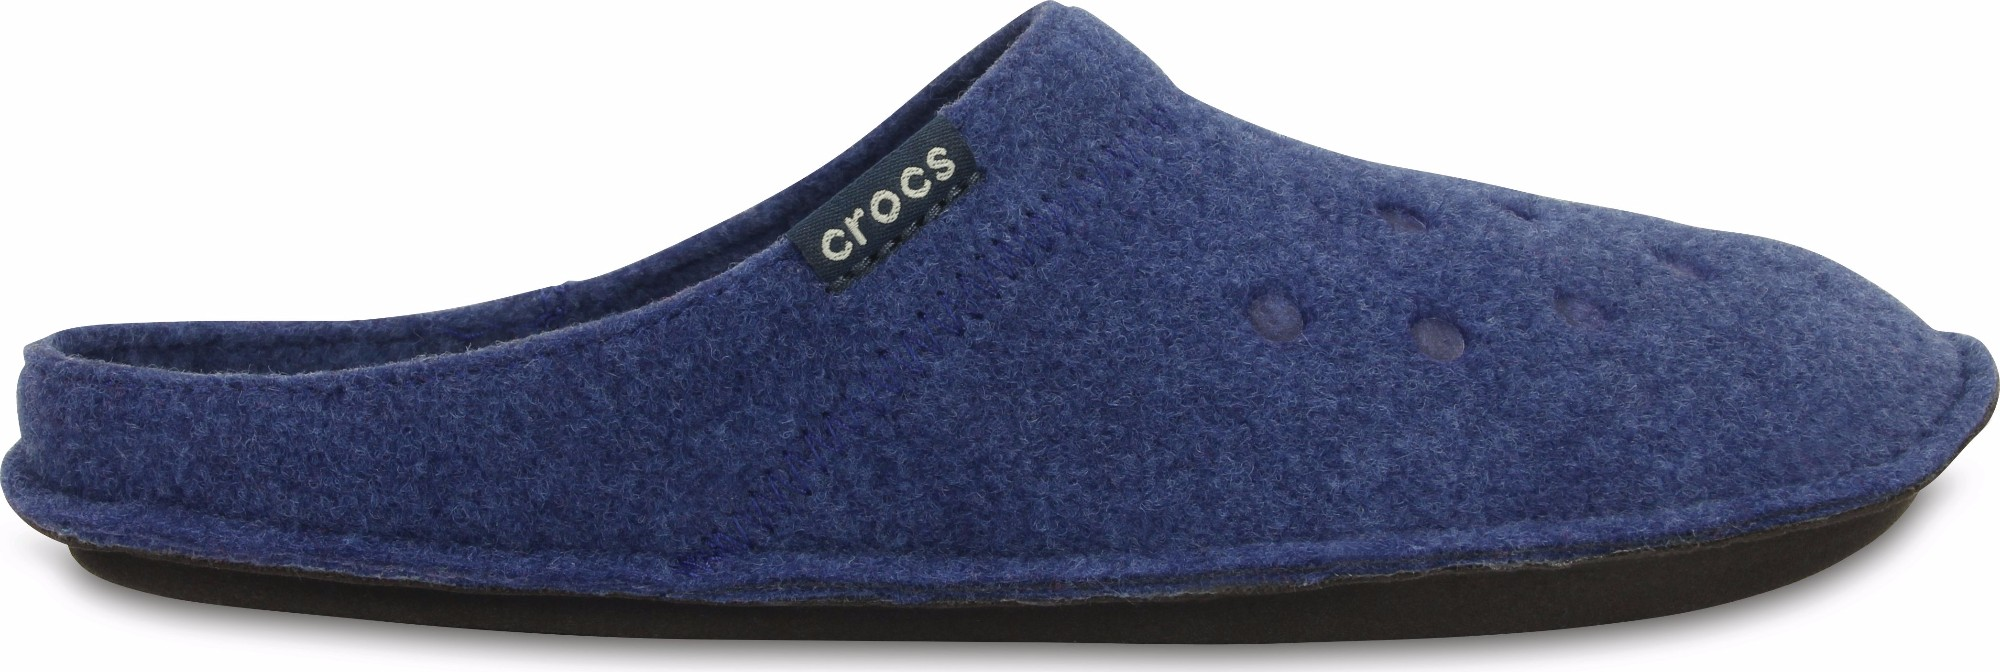 Crocs™ Classic Slipper Cerulean Blue/Oatmeal 44,5